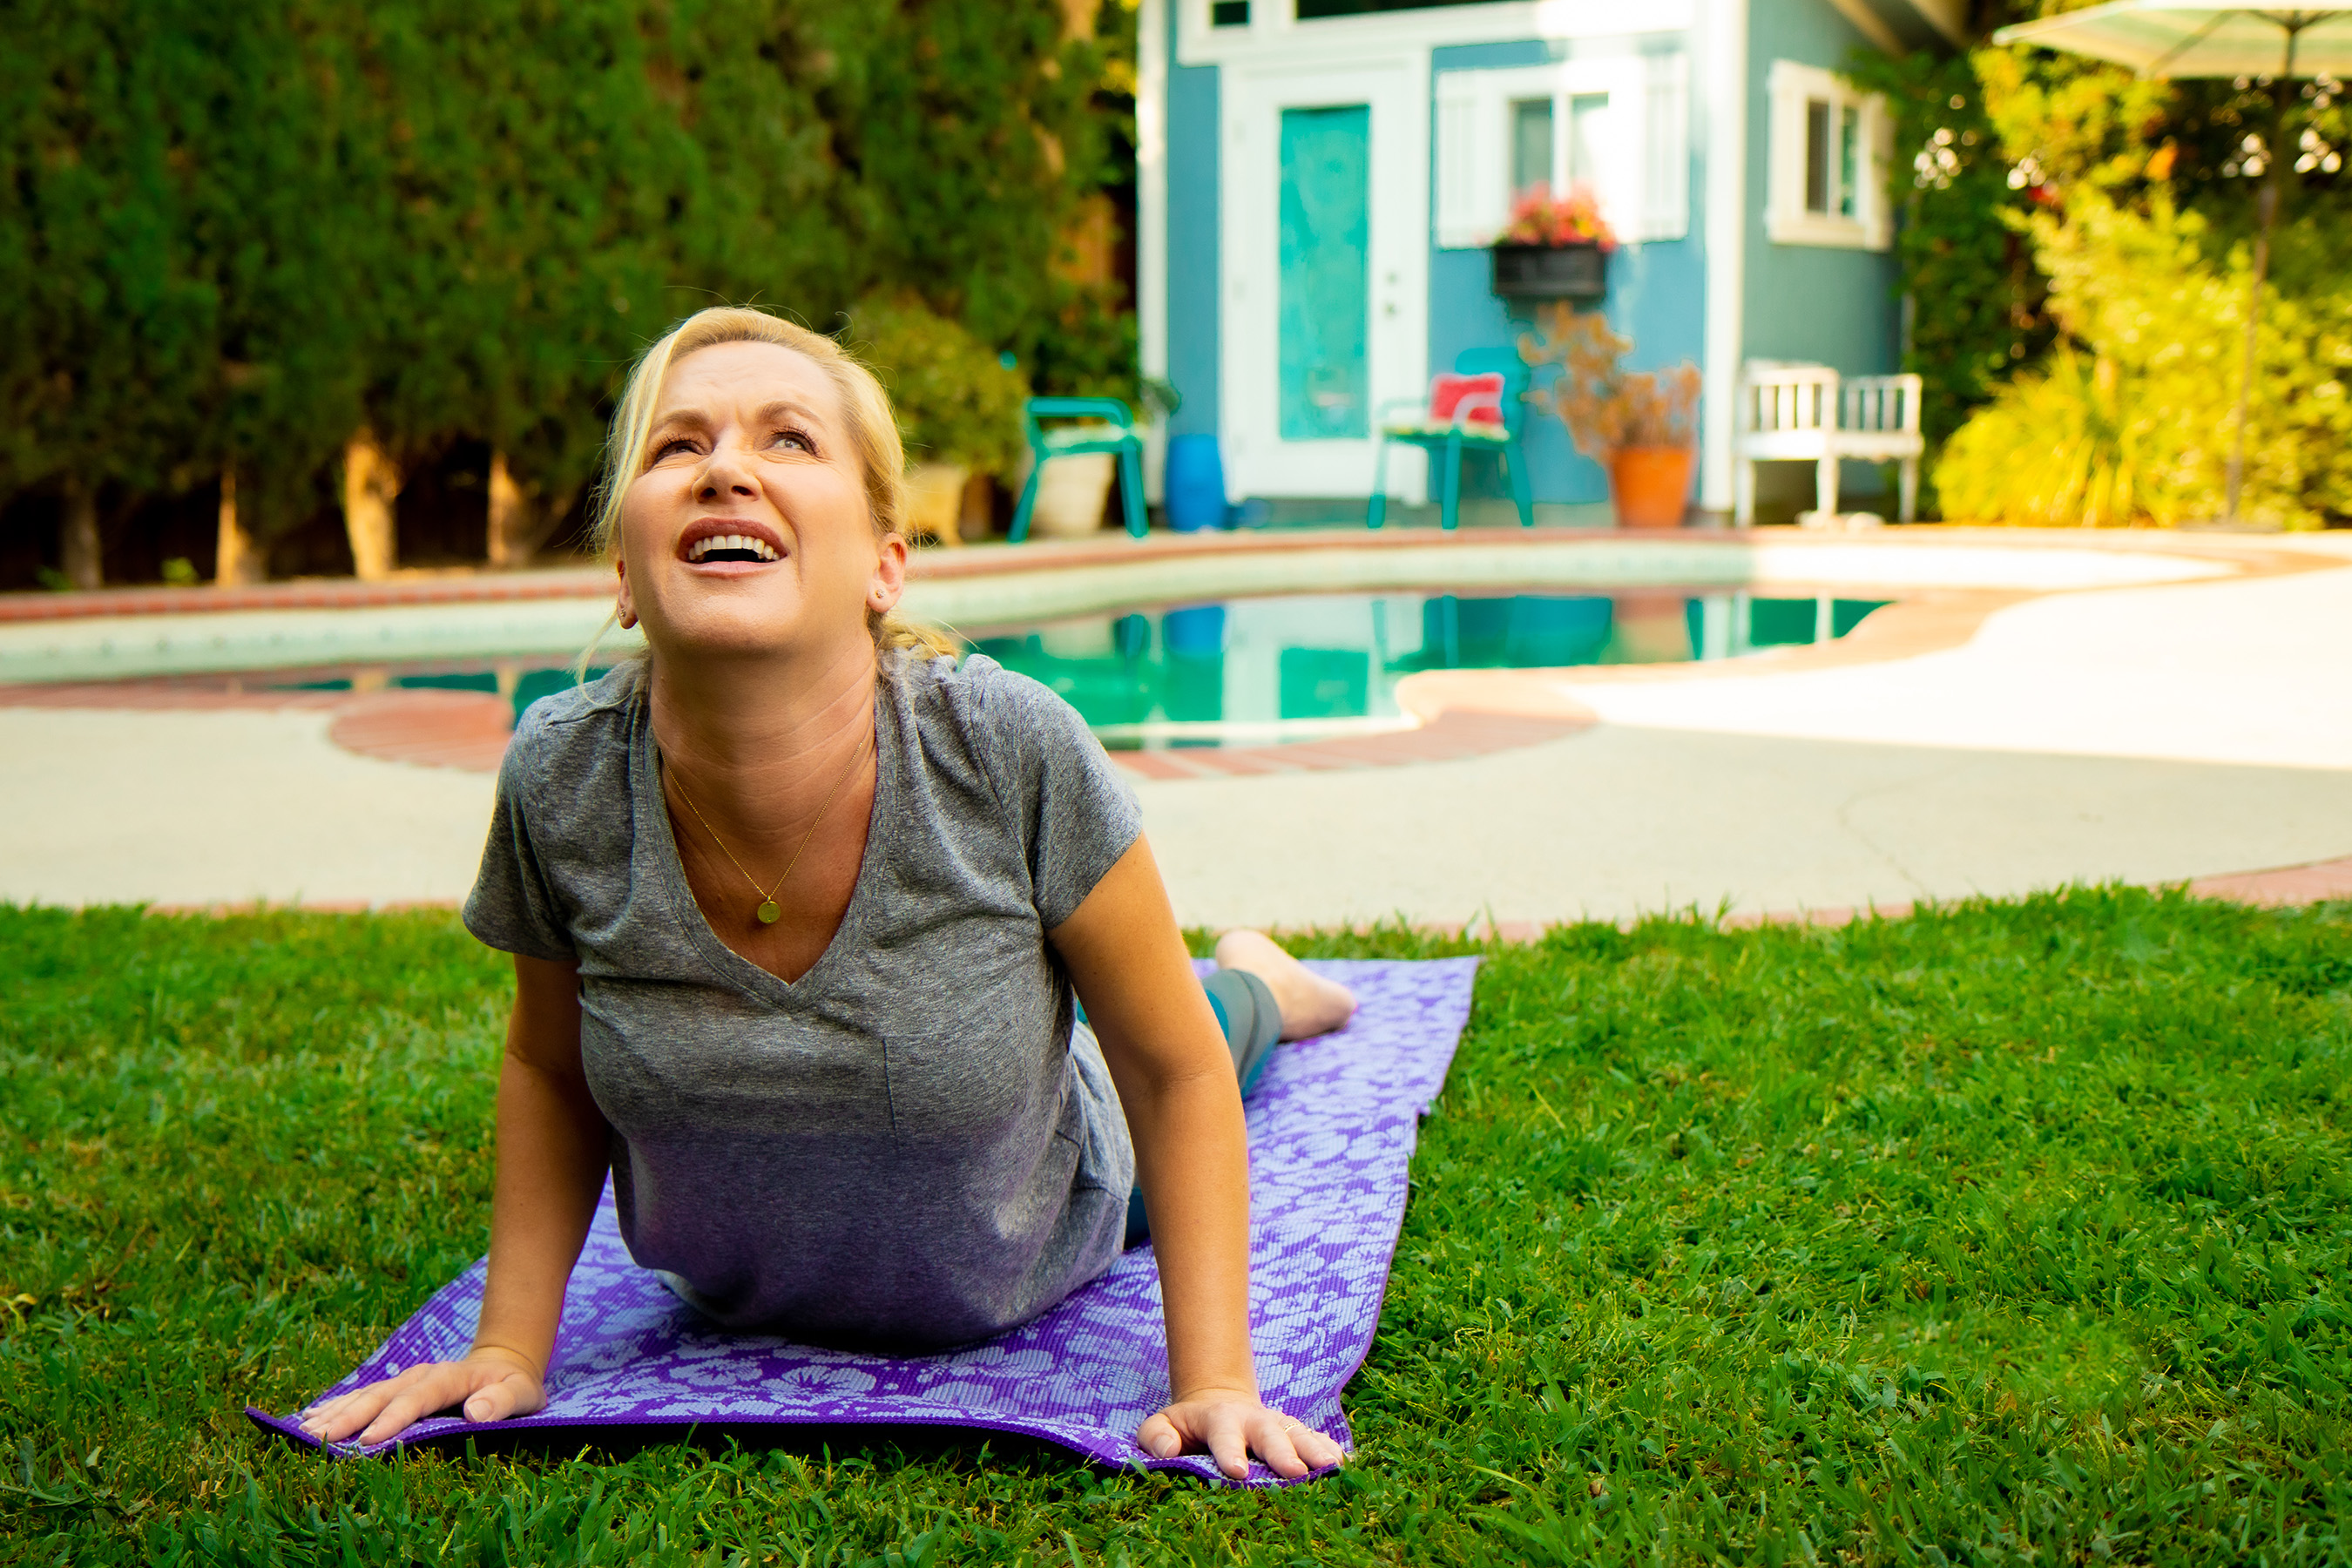 To support the innovative launch of Advil Dual Action, Advil is teaming up with actress Angela Kinsey, who has long relied on Advil to help combat everyday aches and pains.